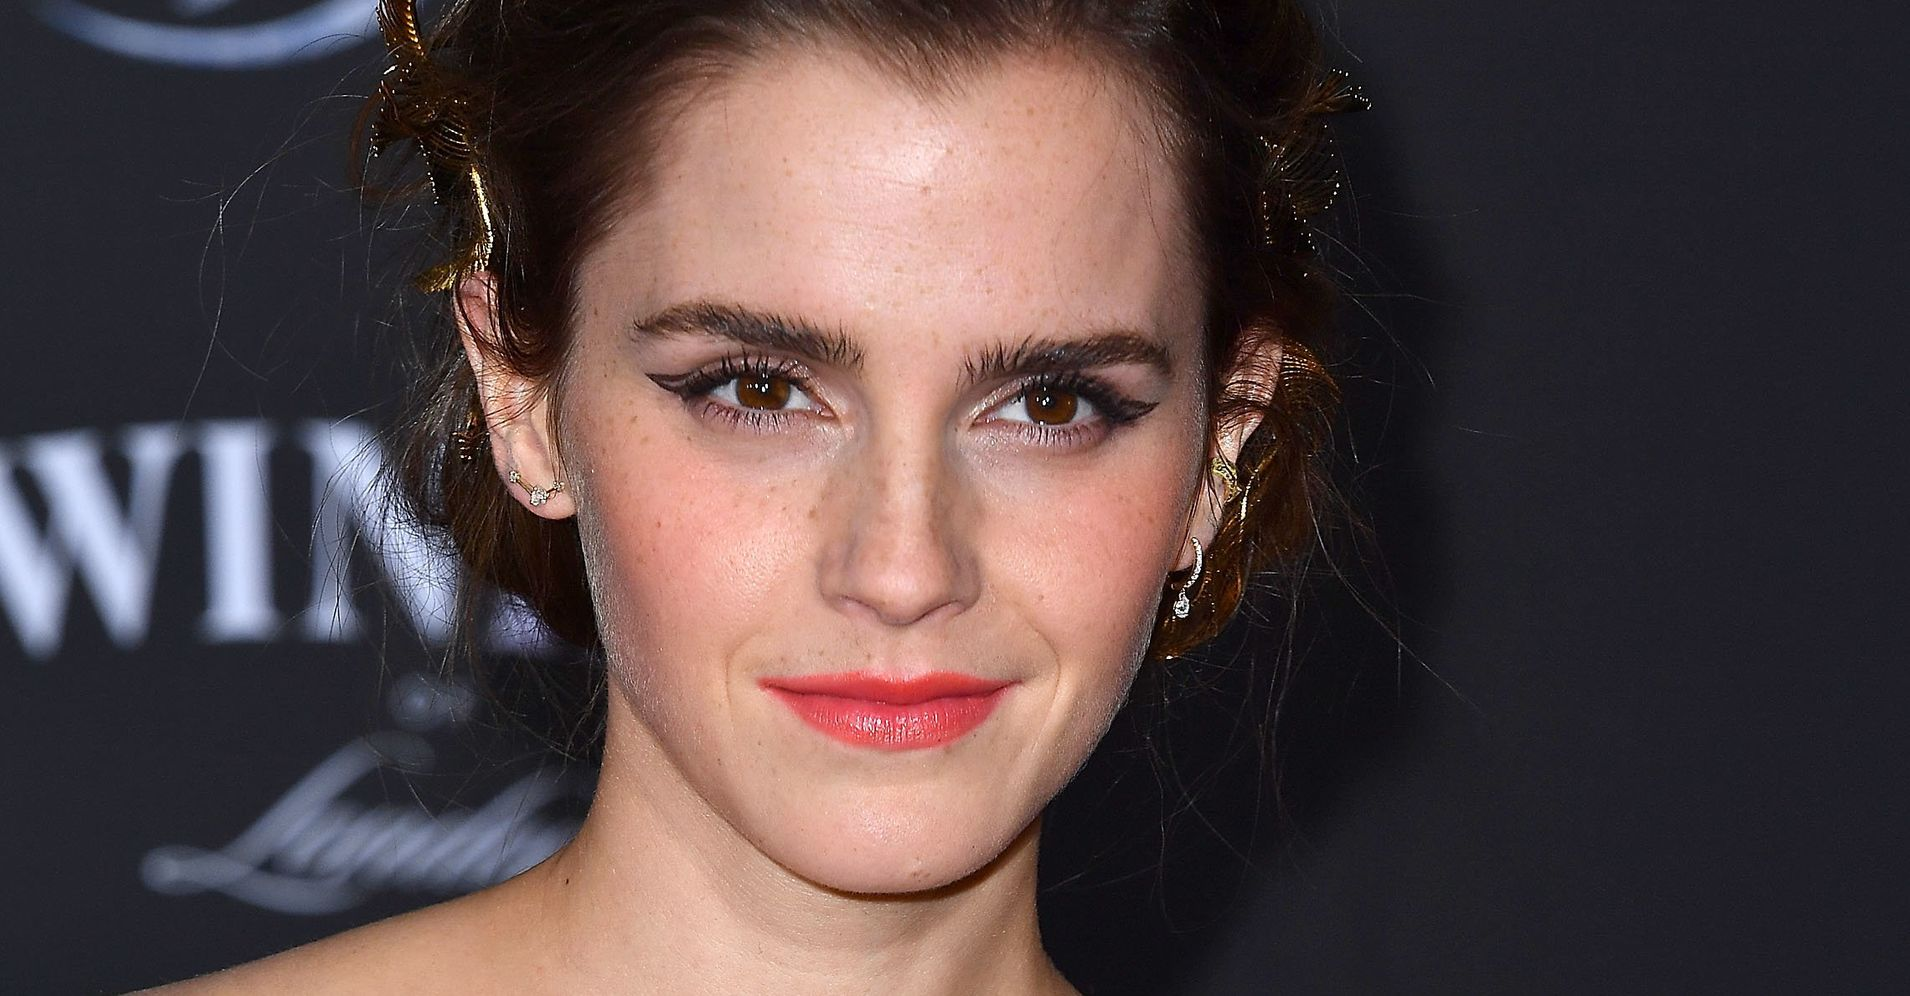 60f86f94f5c Emma Watson Oils Her Pubes And Isn't Afraid To Talk About It | HuffPost Life